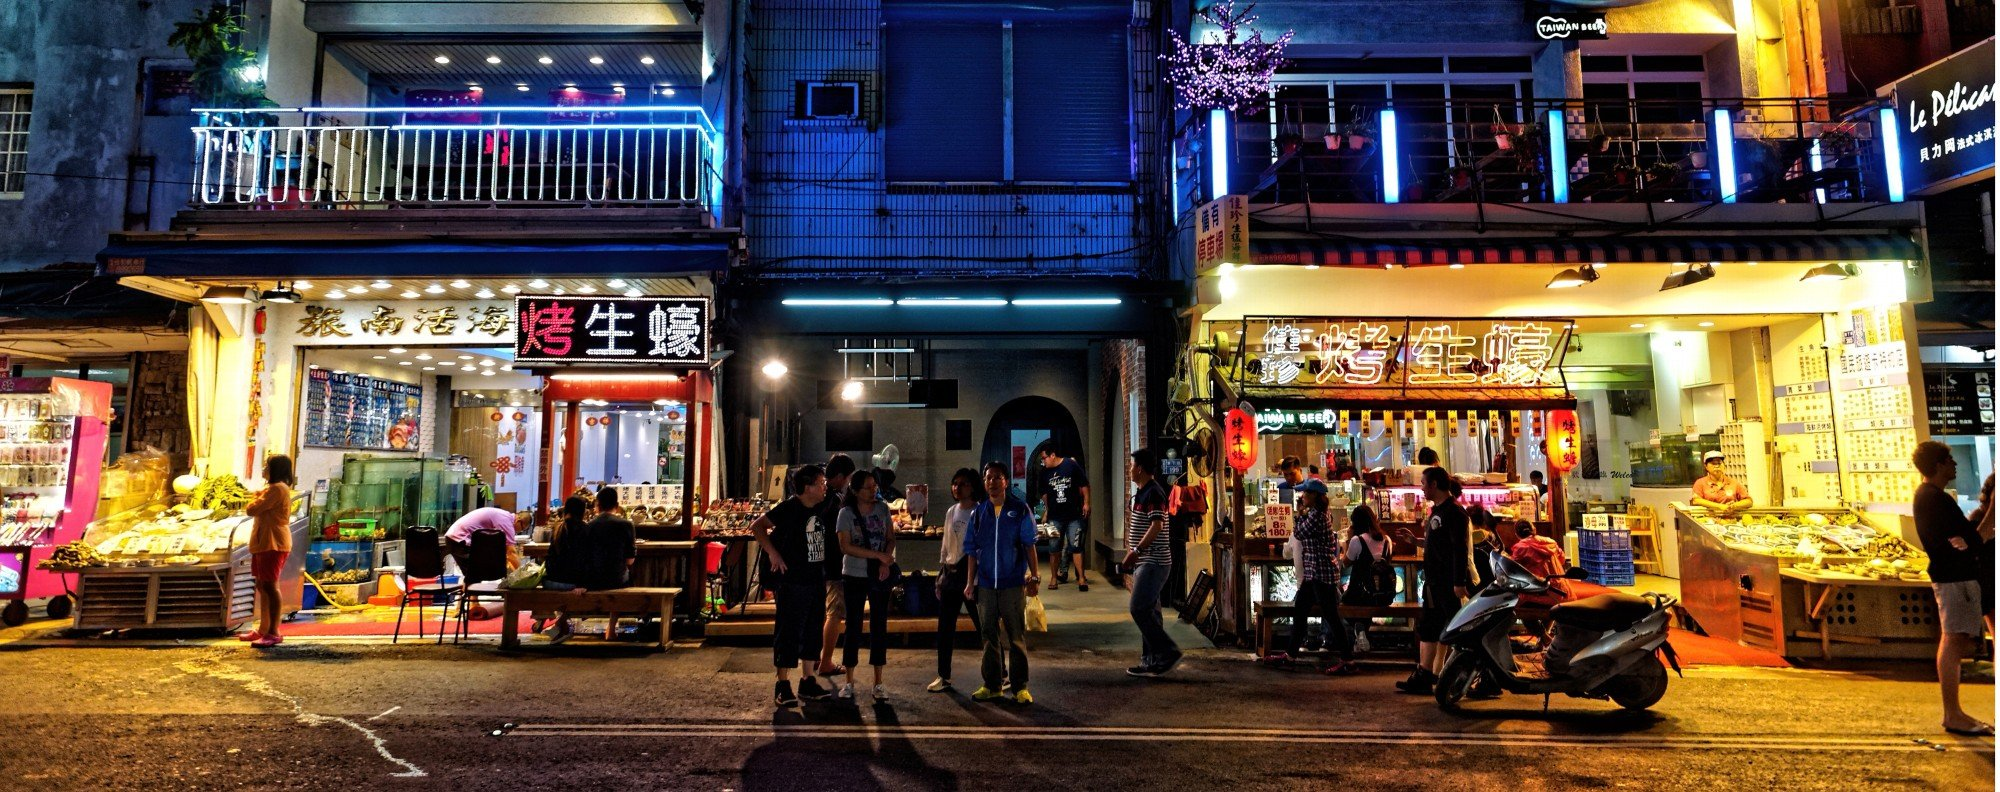 The night market in Kenting. Picture: Martin Williams